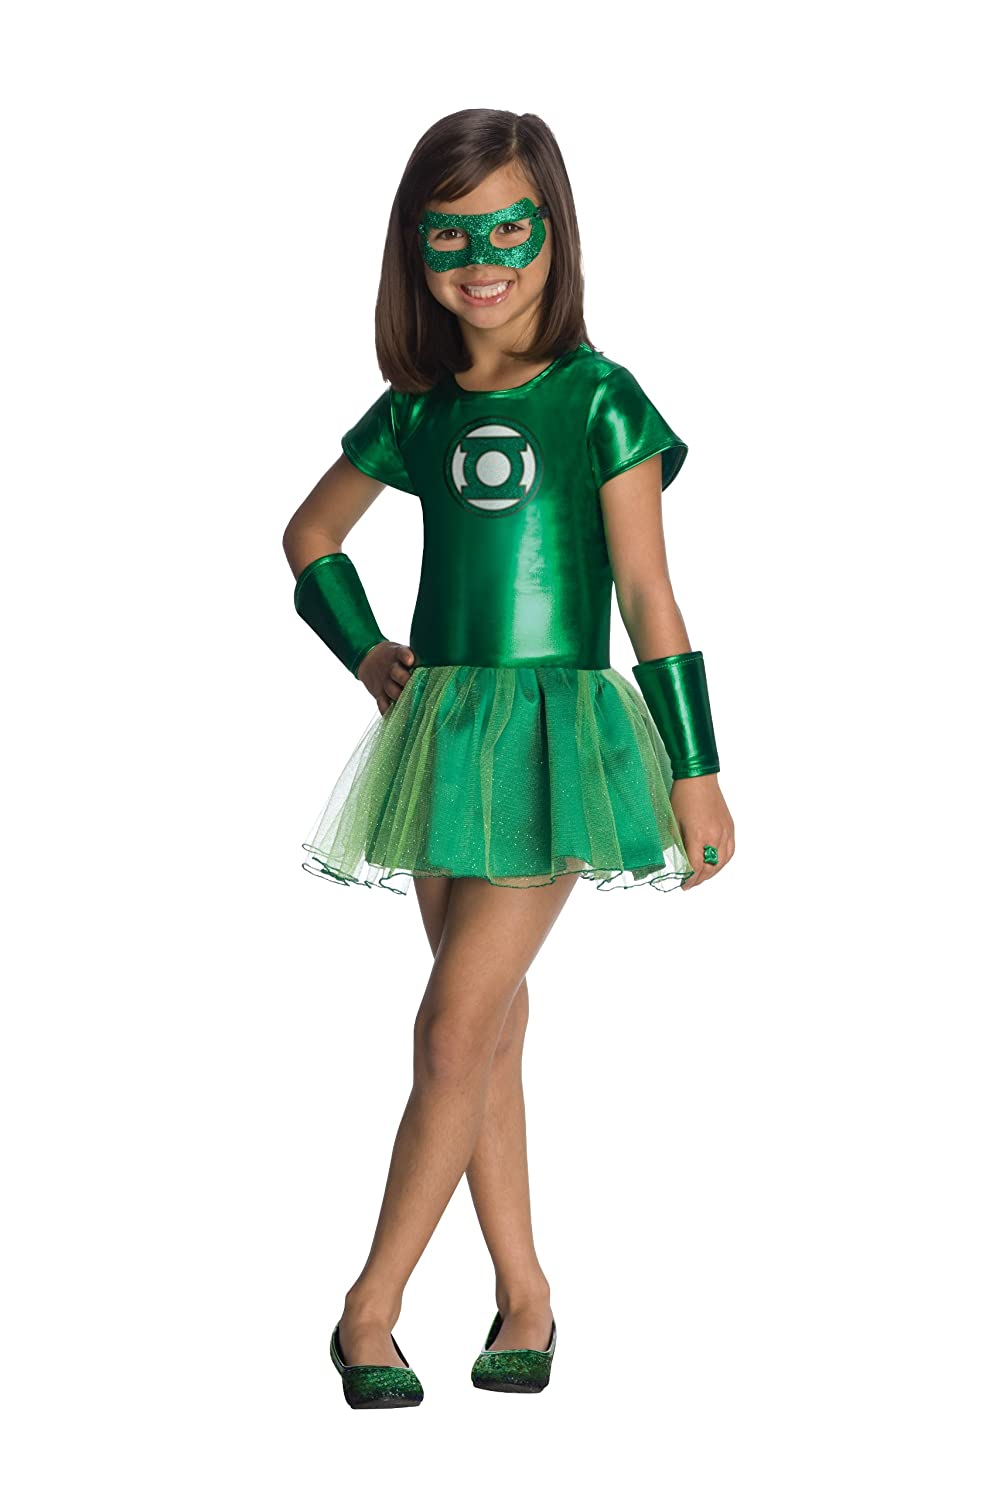 Green lantern costume for women